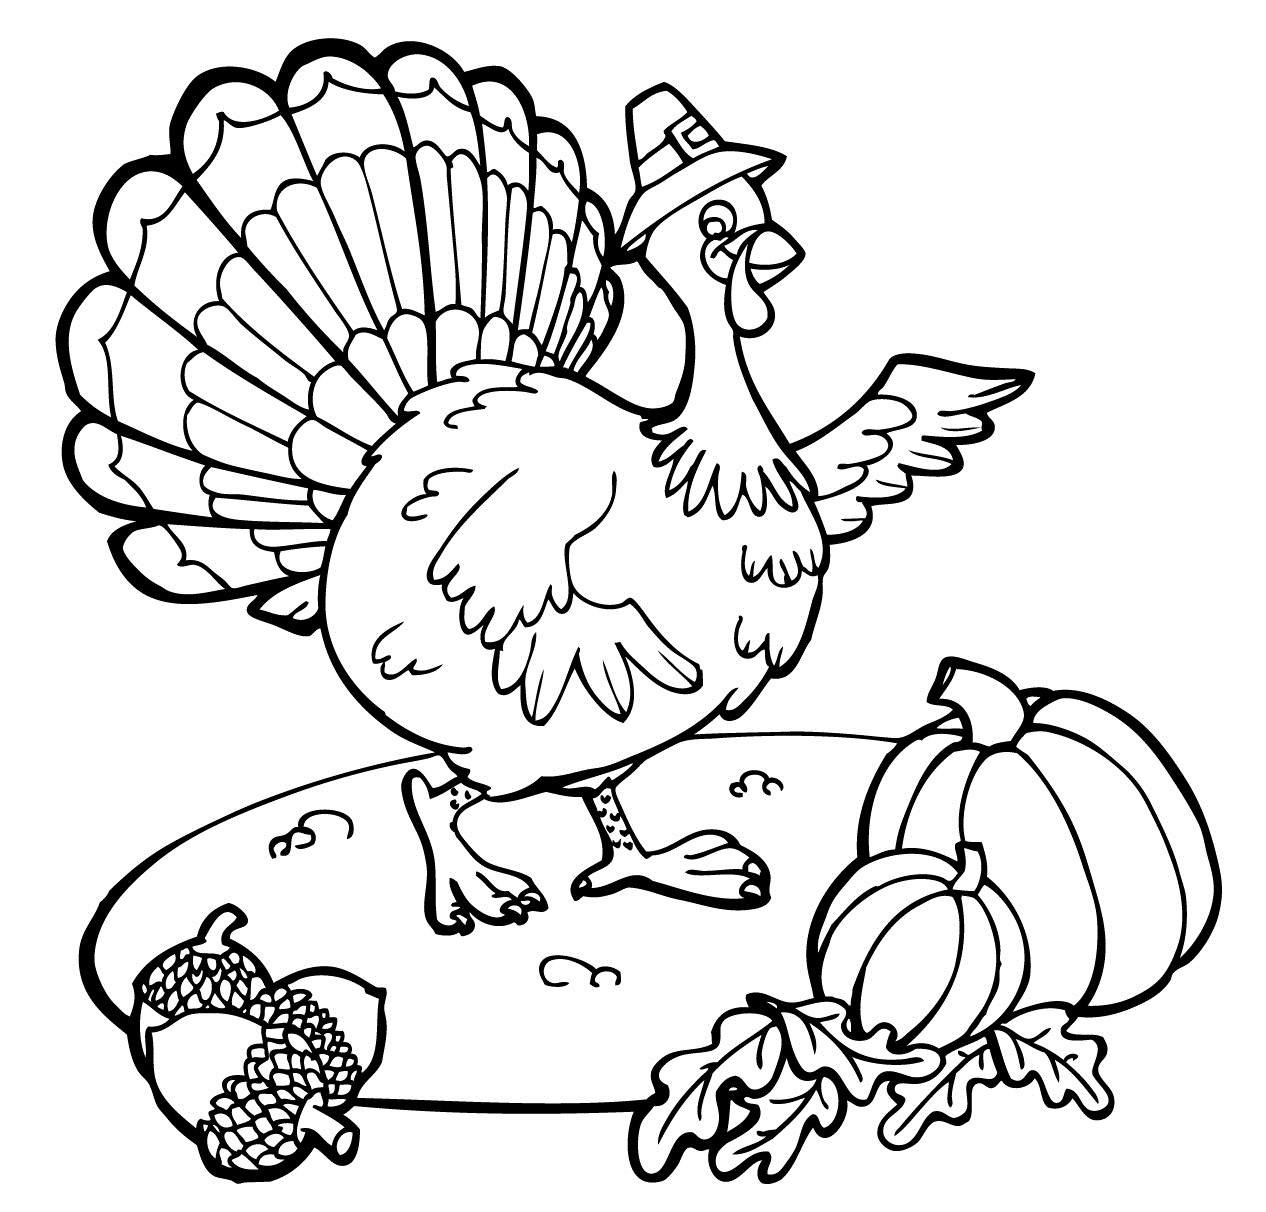 kids thanksgiving coloring pages - Coloring Stuff